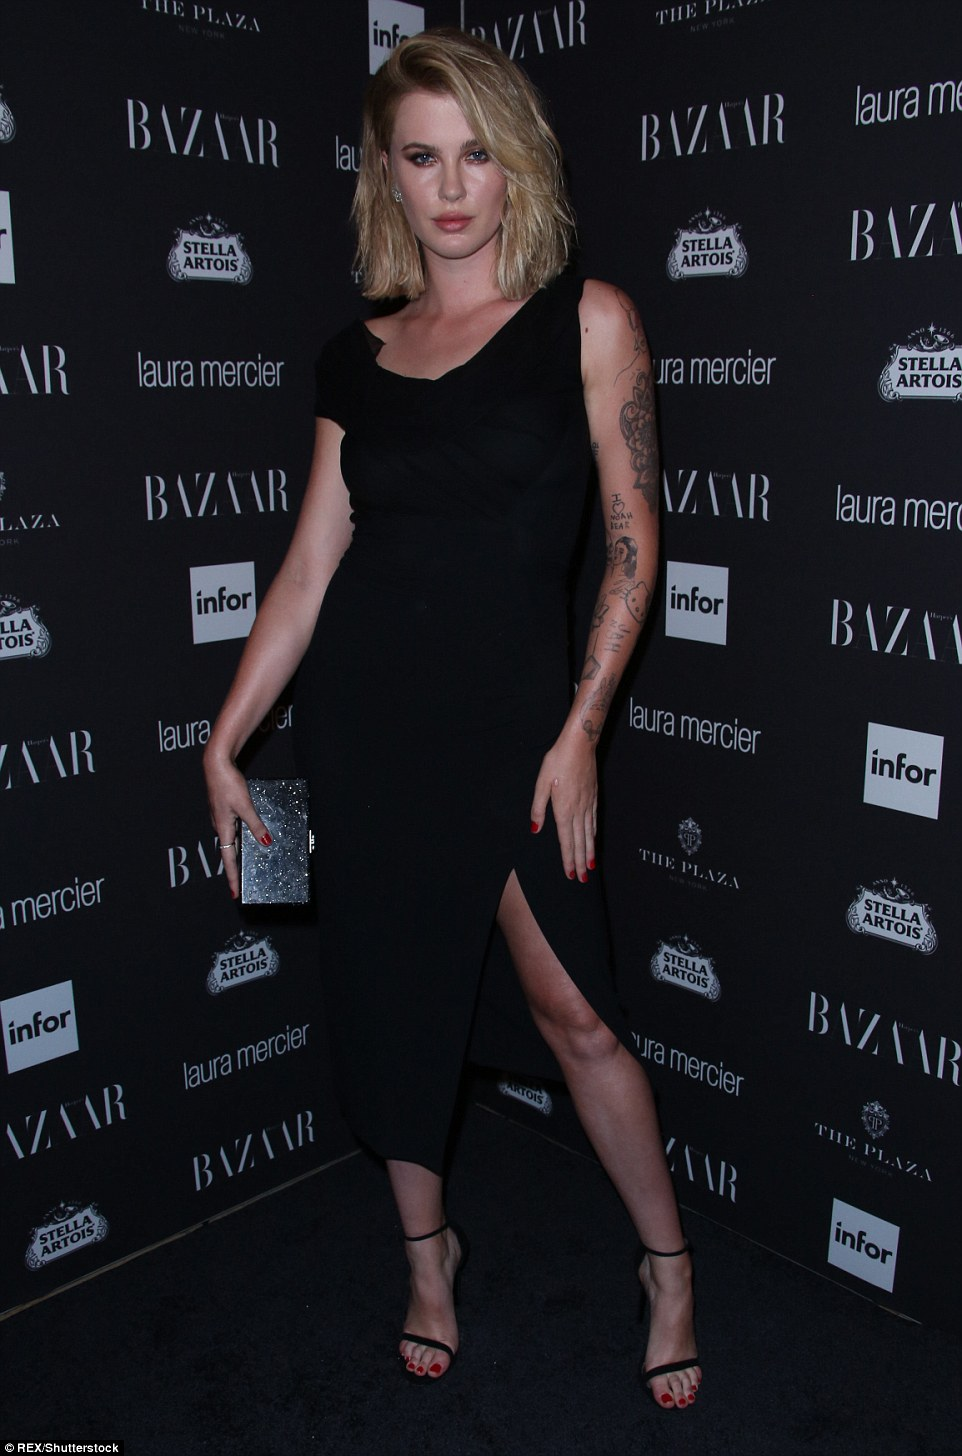 Good genes: Hailey Baldwin's model cousin Ireland showed a bit of leg in her black midi frock, featuring a thigh-high split at the front